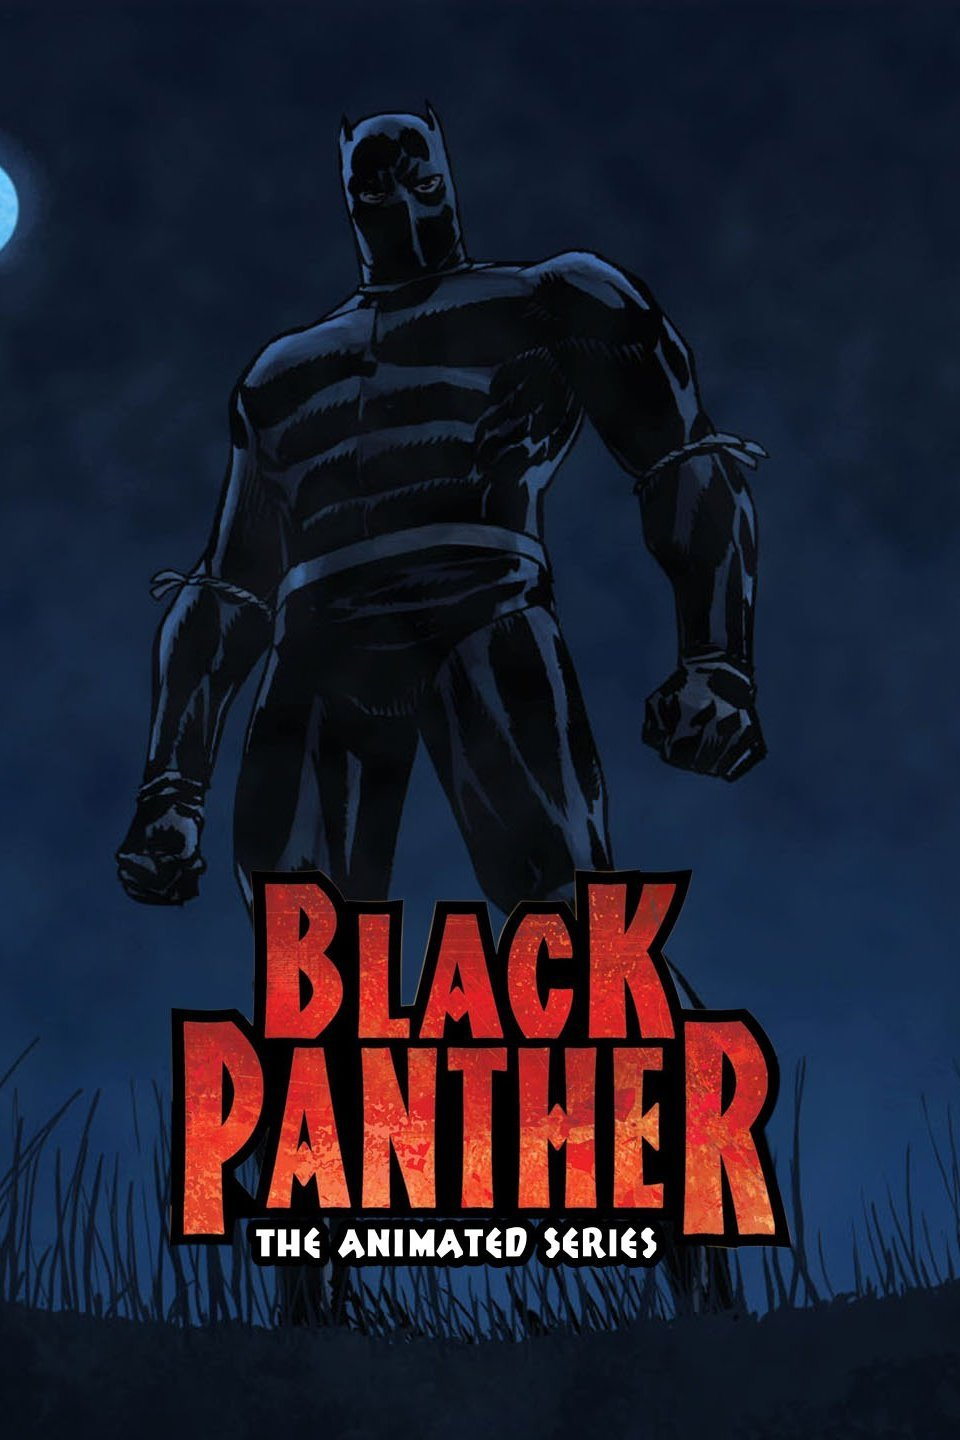 Black Panther on BET's YouTube and Facebook Pages